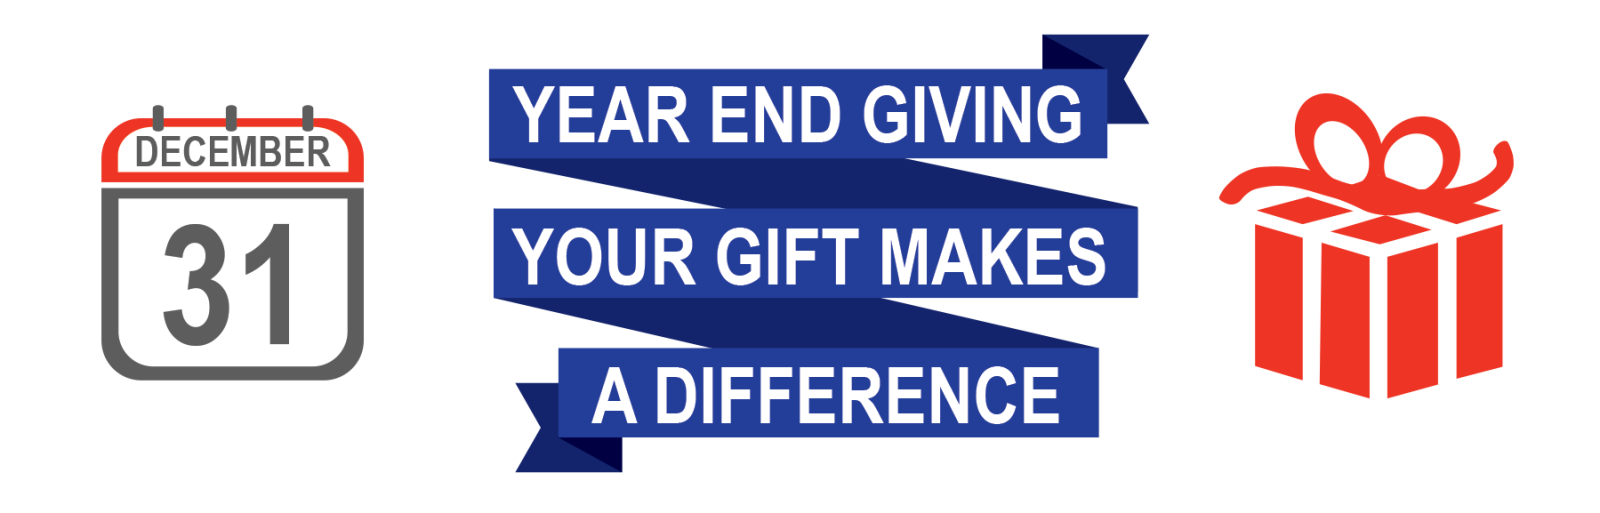 Year End Giving - Your Gift Makes a Difference